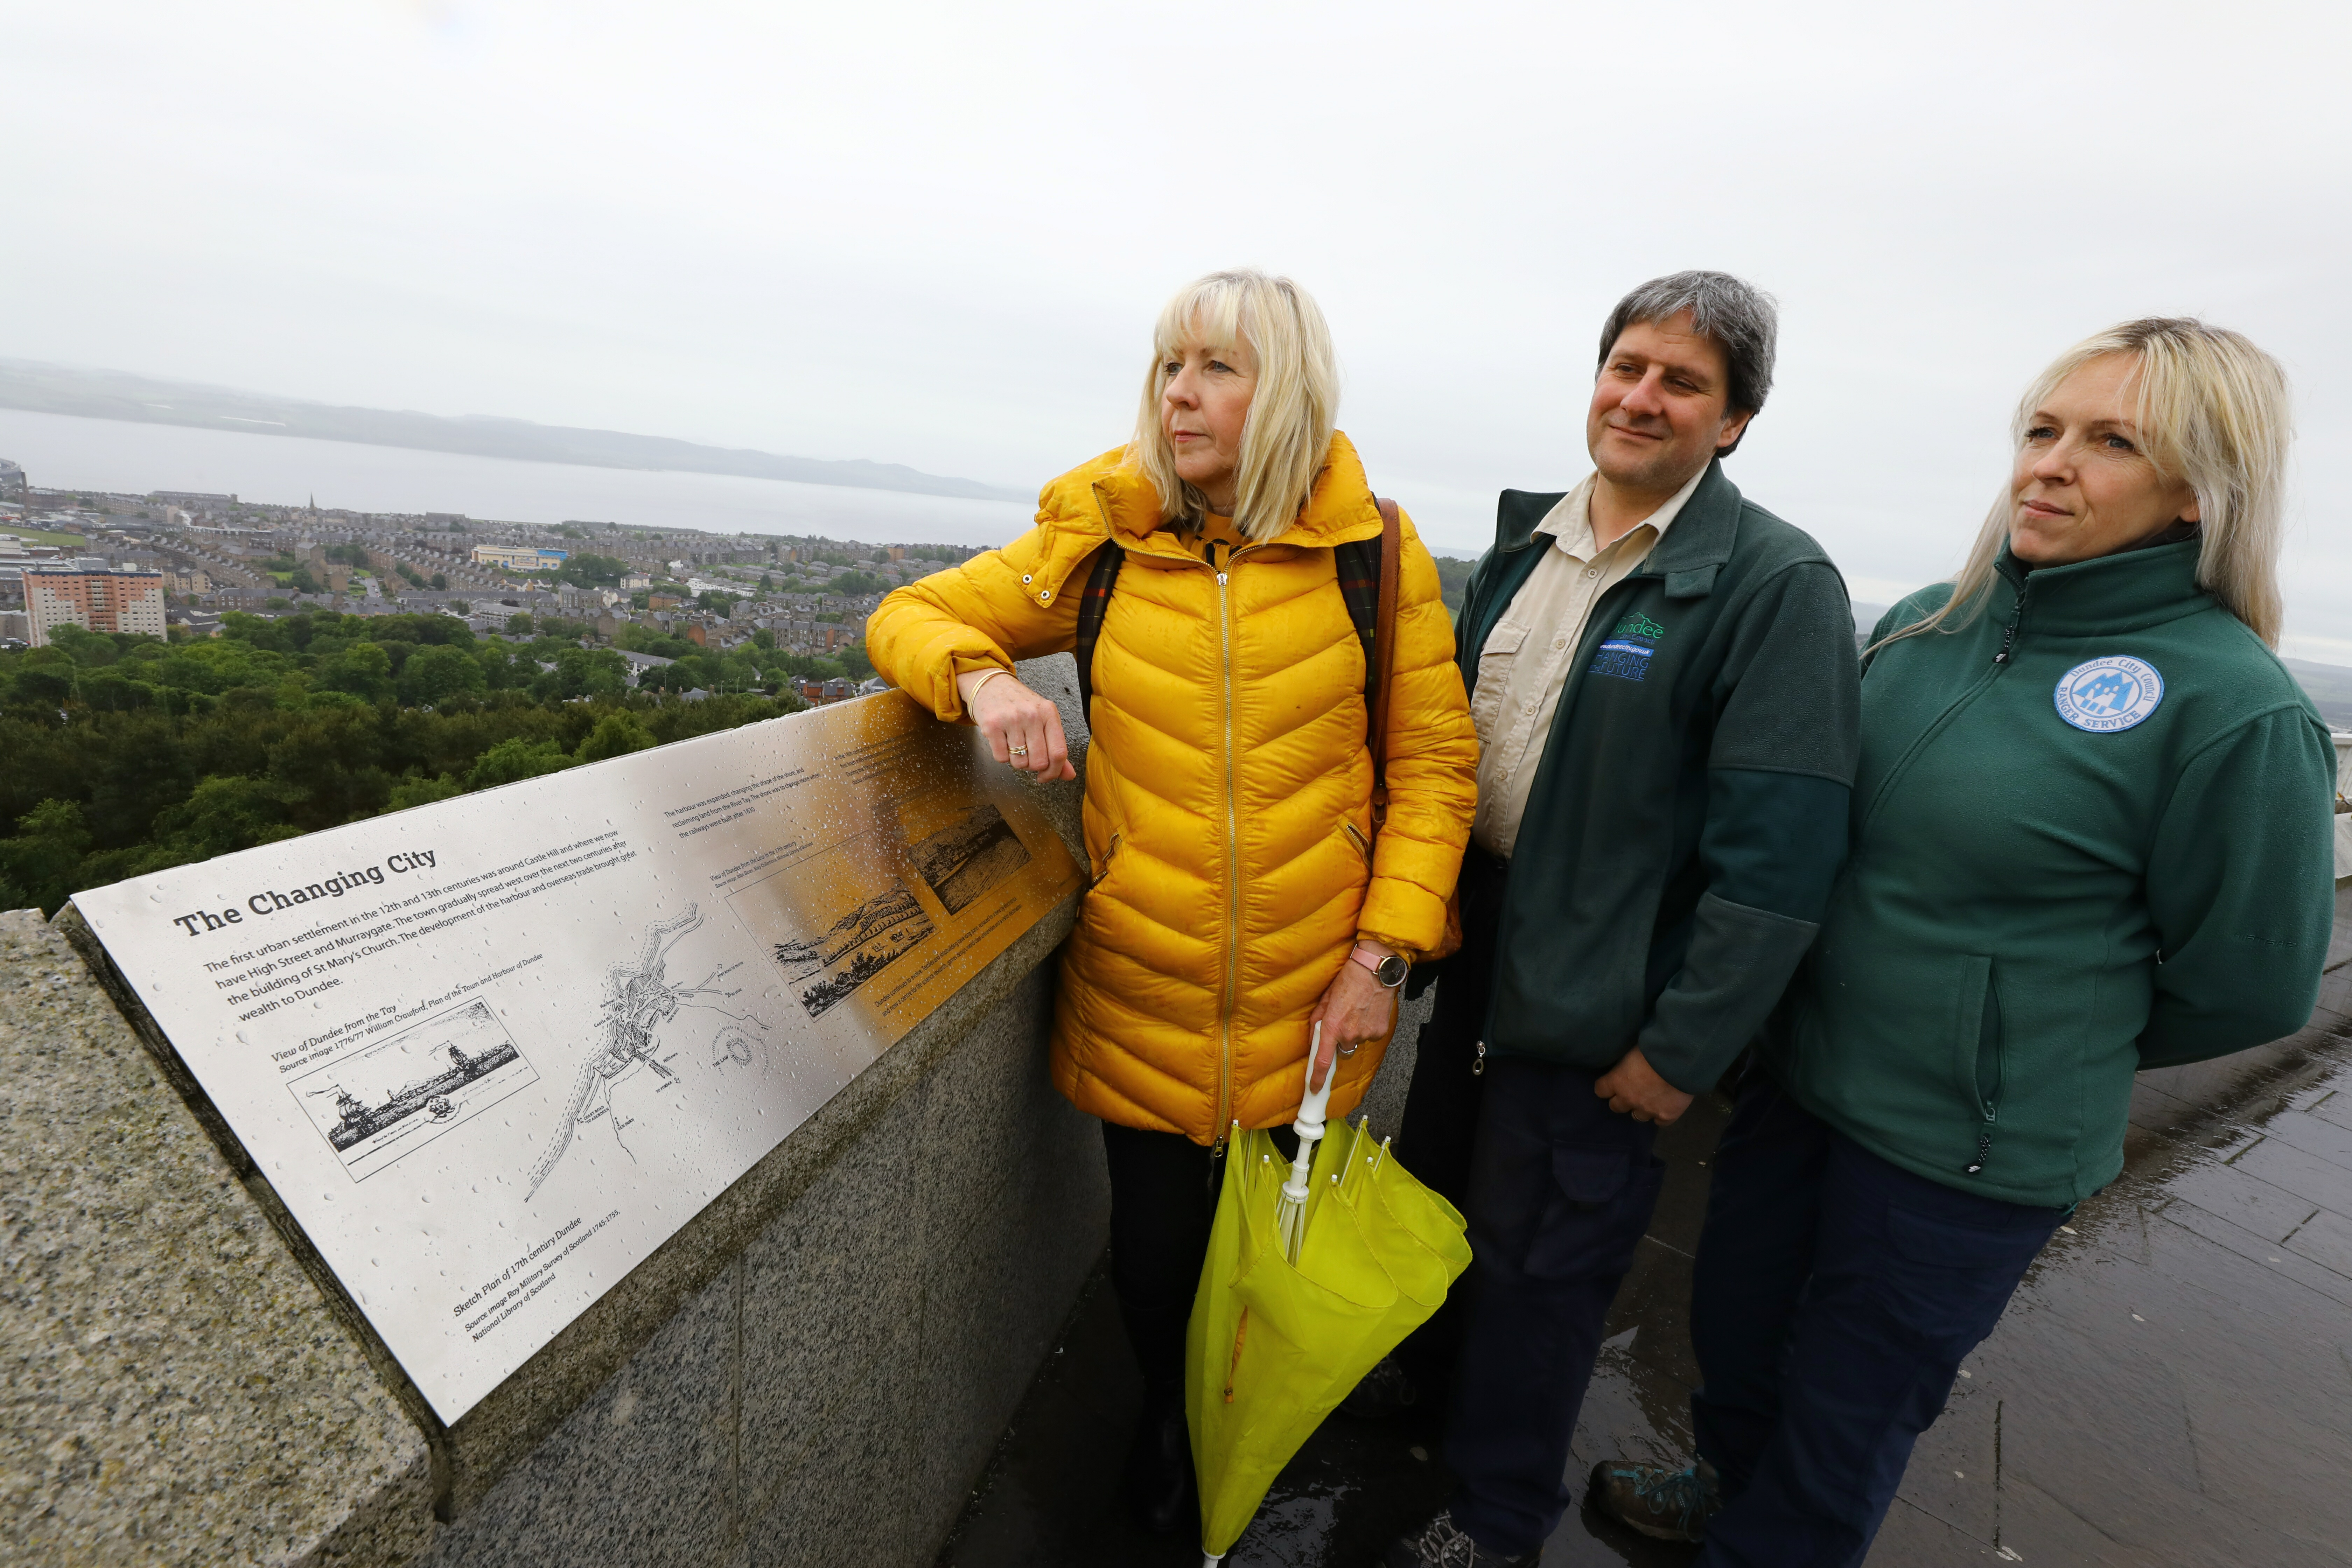 Councillor Anne Rendall, Colin Donald and Laura Jane Blackie, who illustrated the plaques, - both DCC Countryside Rangers, beside one of the new plaques at the top of Dundee Law.